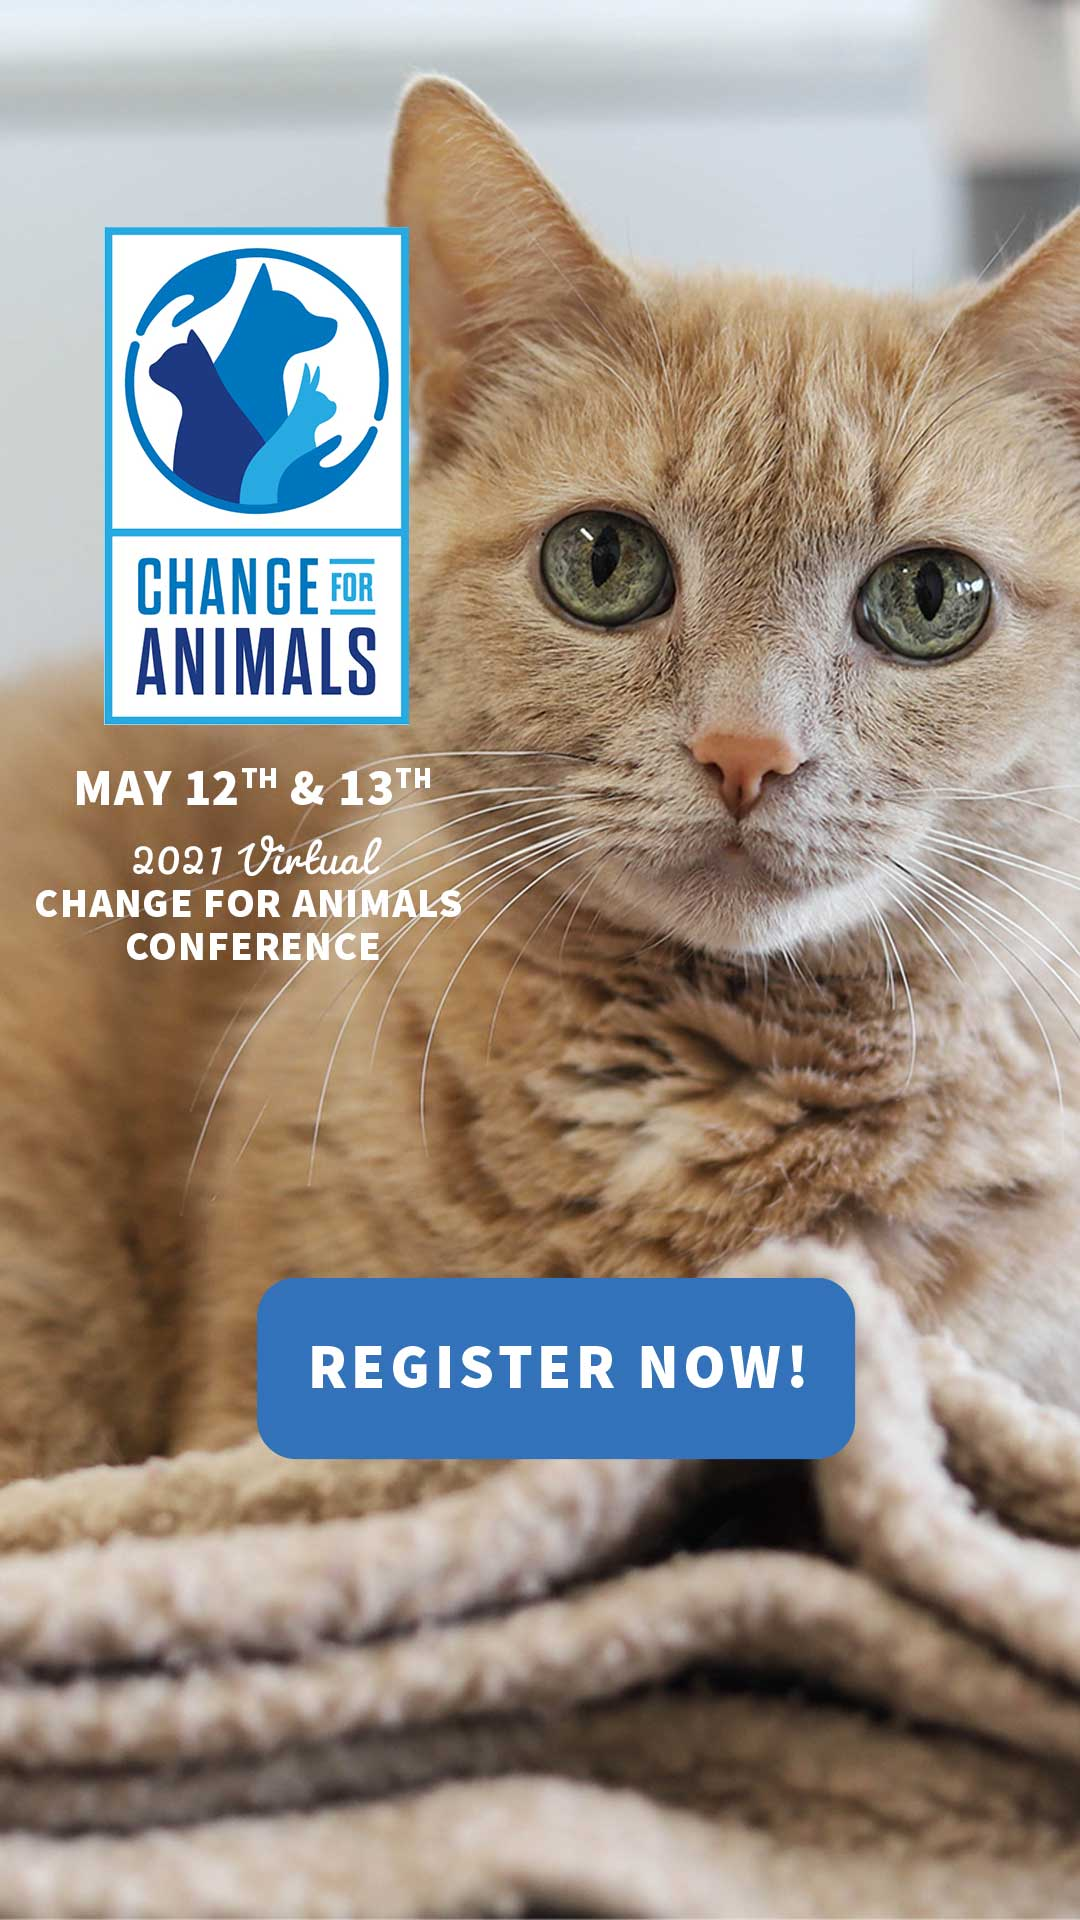 Cat promoting conference